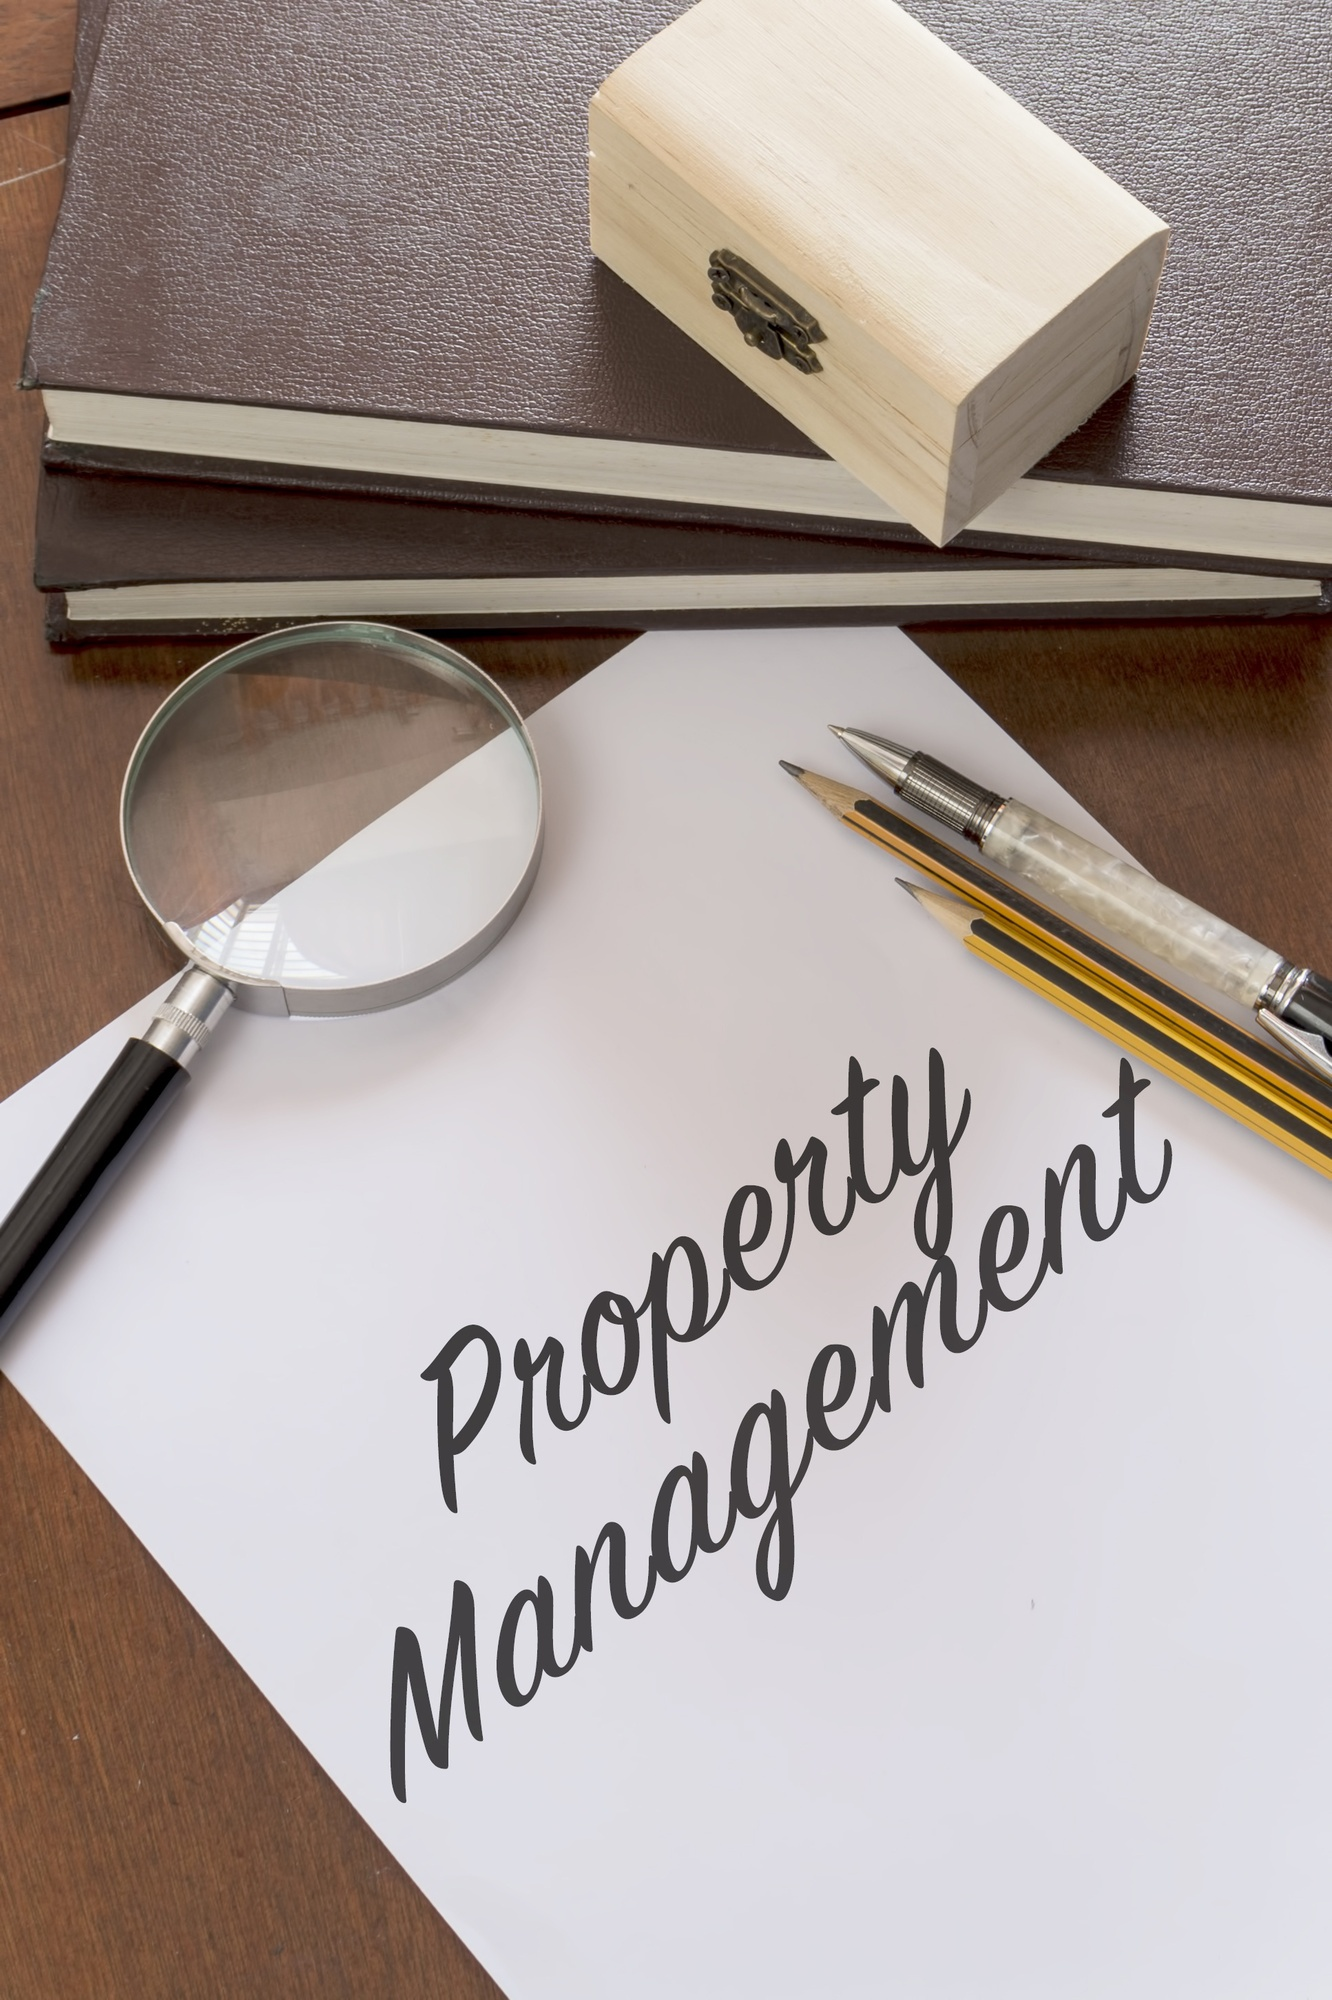 property management fees